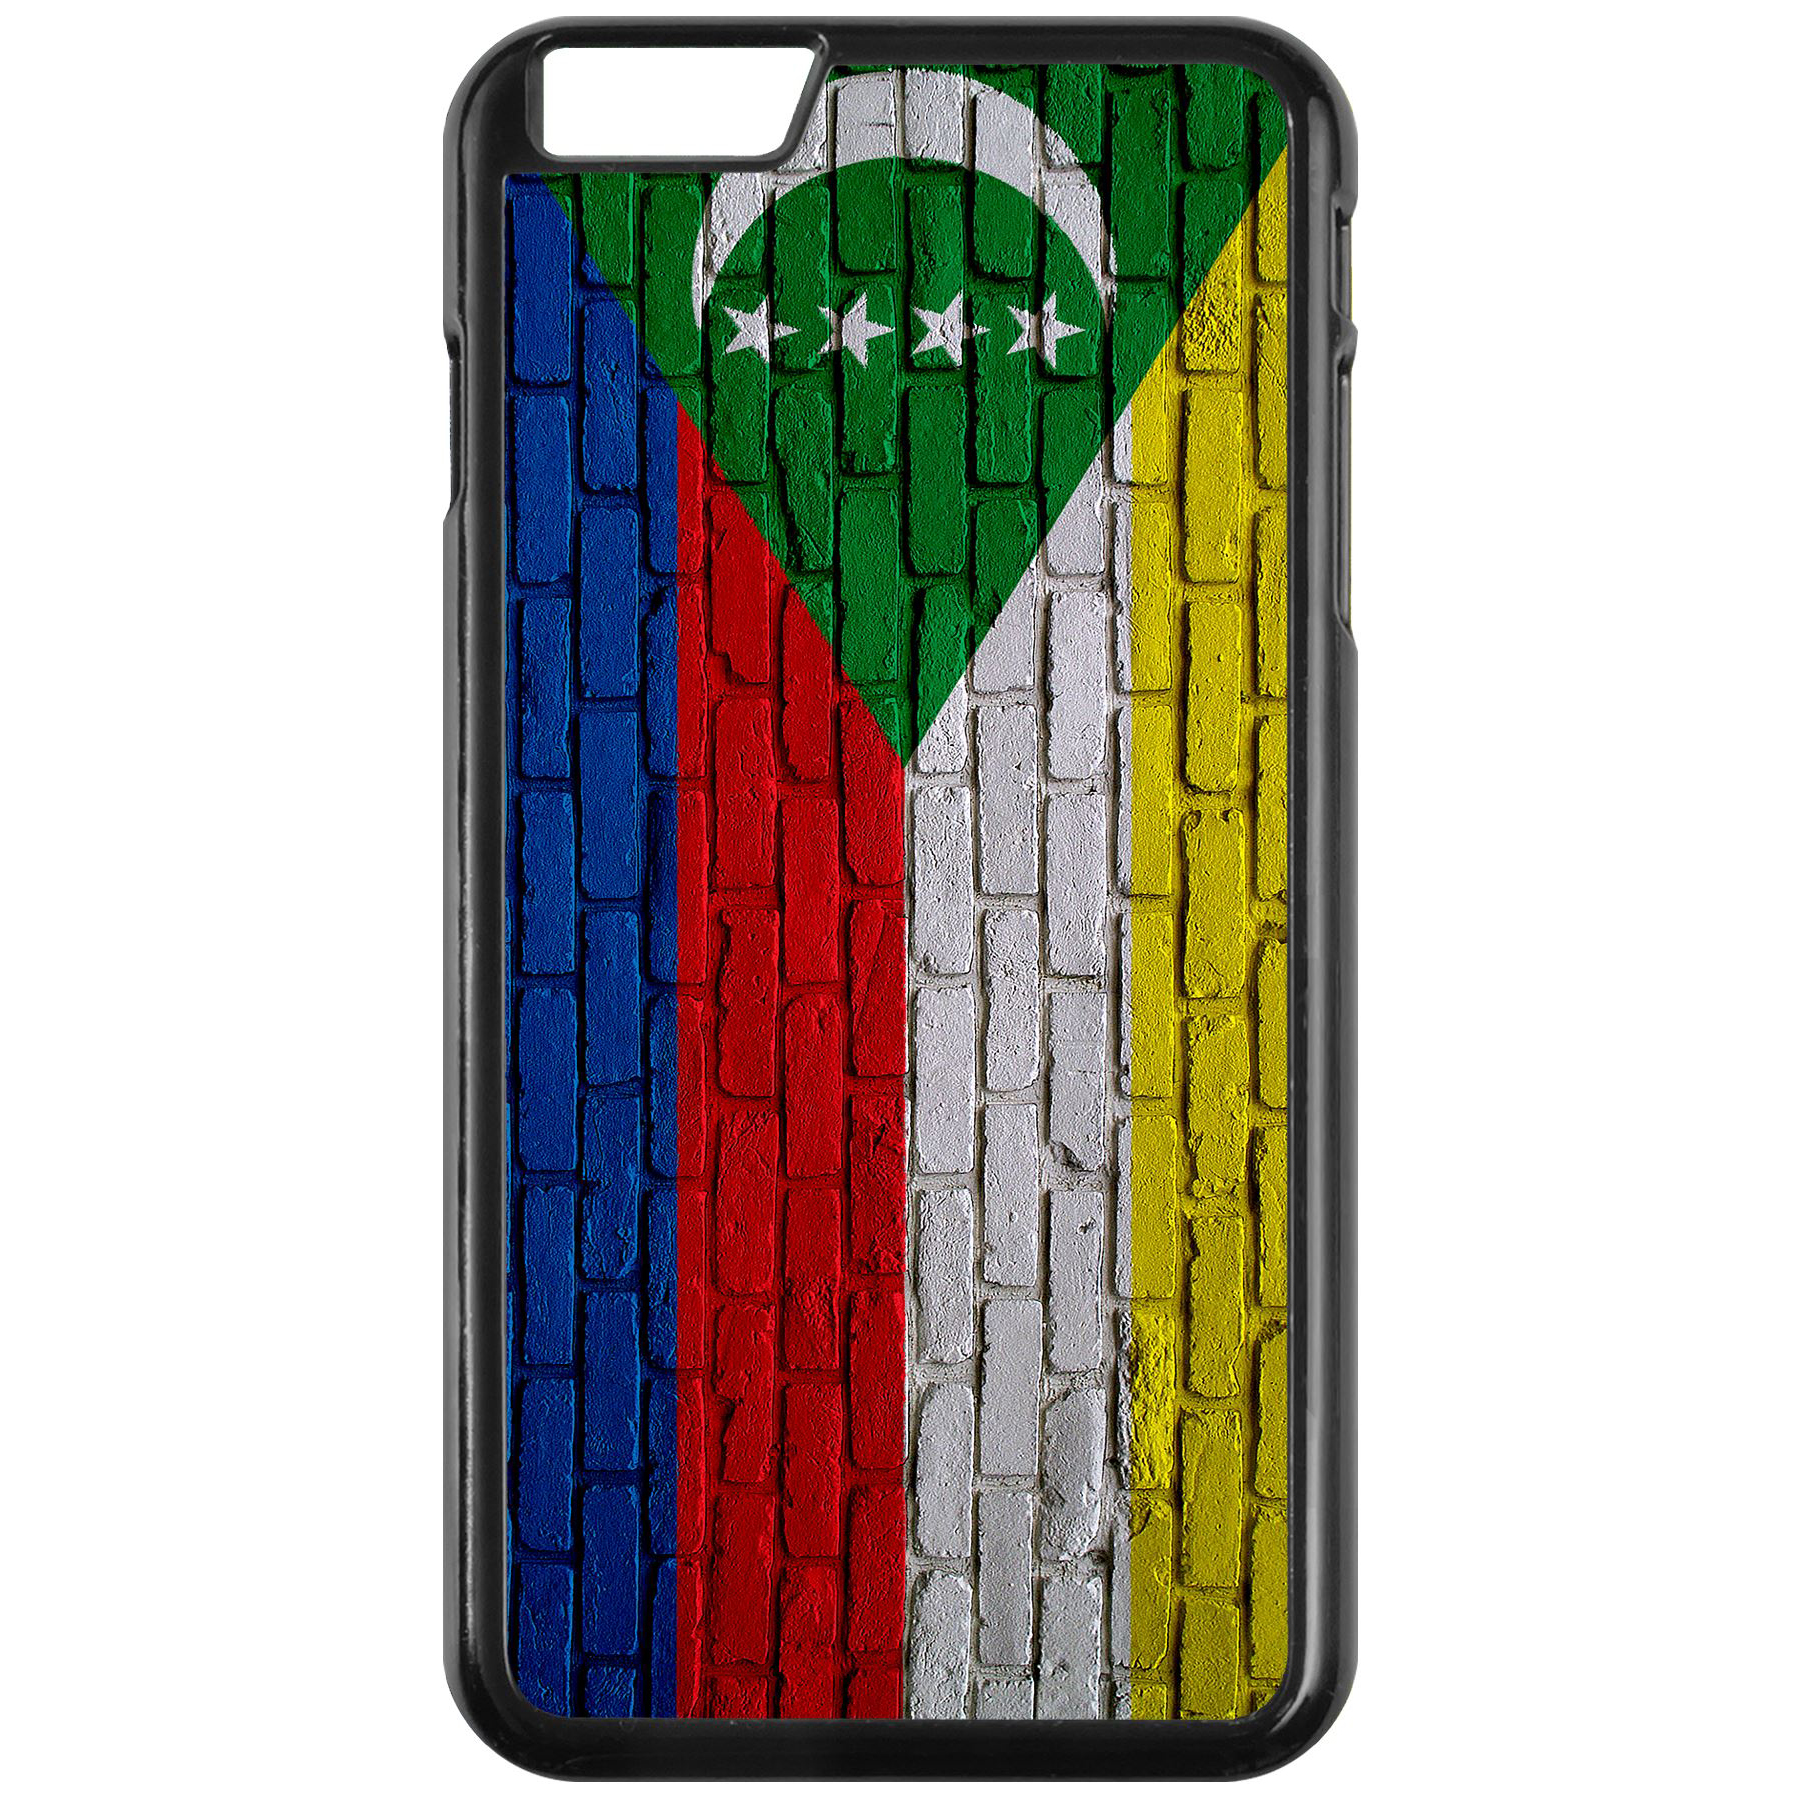 Apple-iPhone-Case-with-Flag-of-Comoros-Comorian-Many-Design-Options thumbnail 51